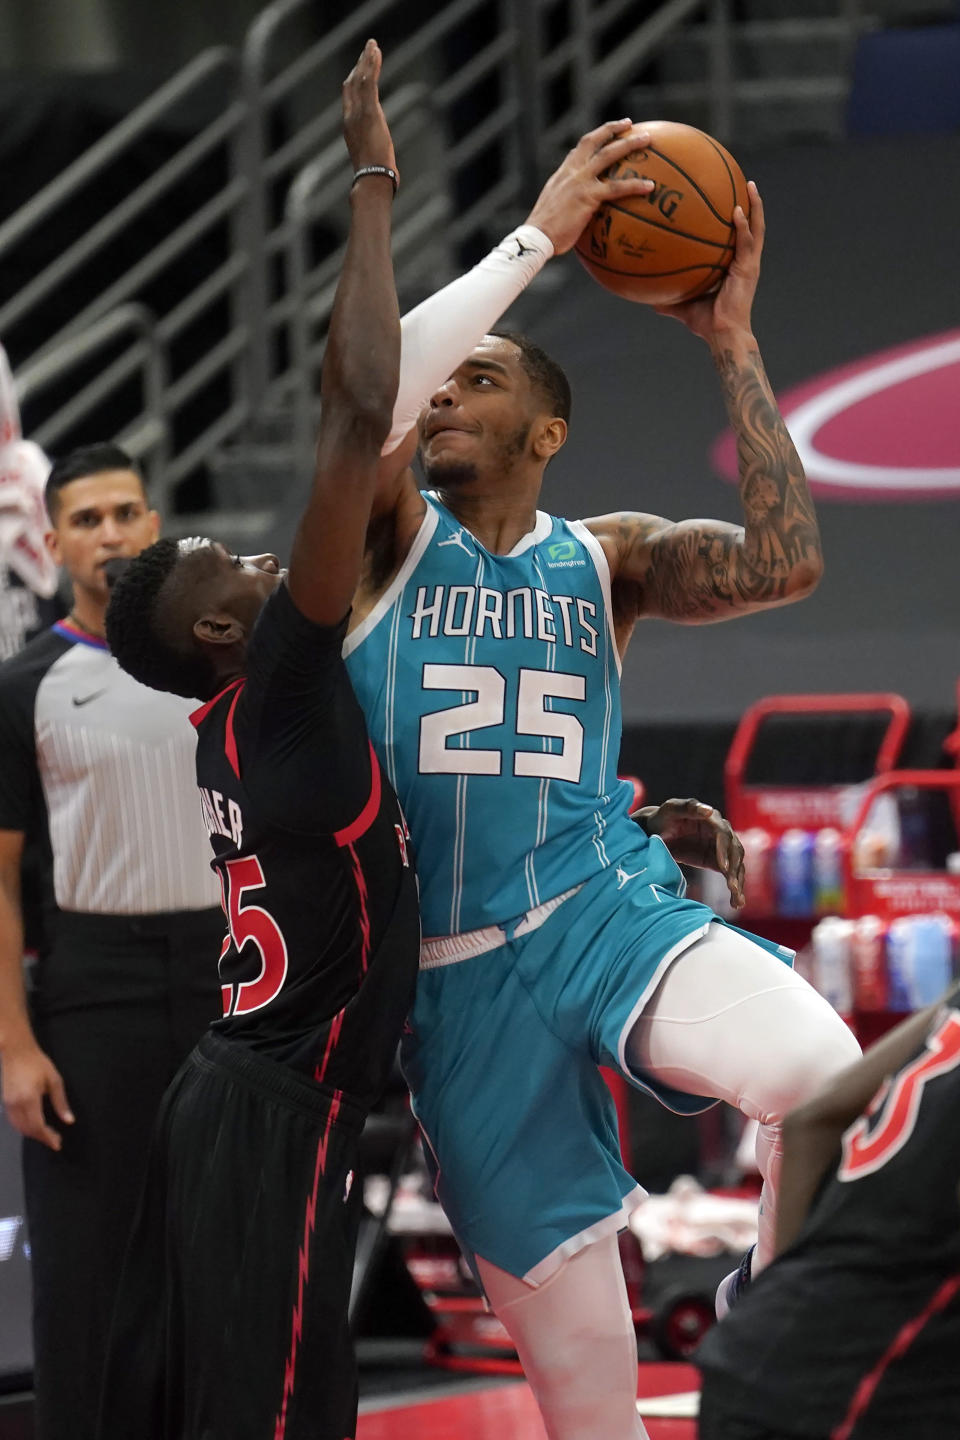 Charlotte Hornets forward P.J. Washington (25) shoots over Toronto Raptors forward Chris Boucher during the second half of an NBA basketball game Saturday, Jan. 16, 2021, in Tampa, Fla. (AP Photo/Chris O'Meara)